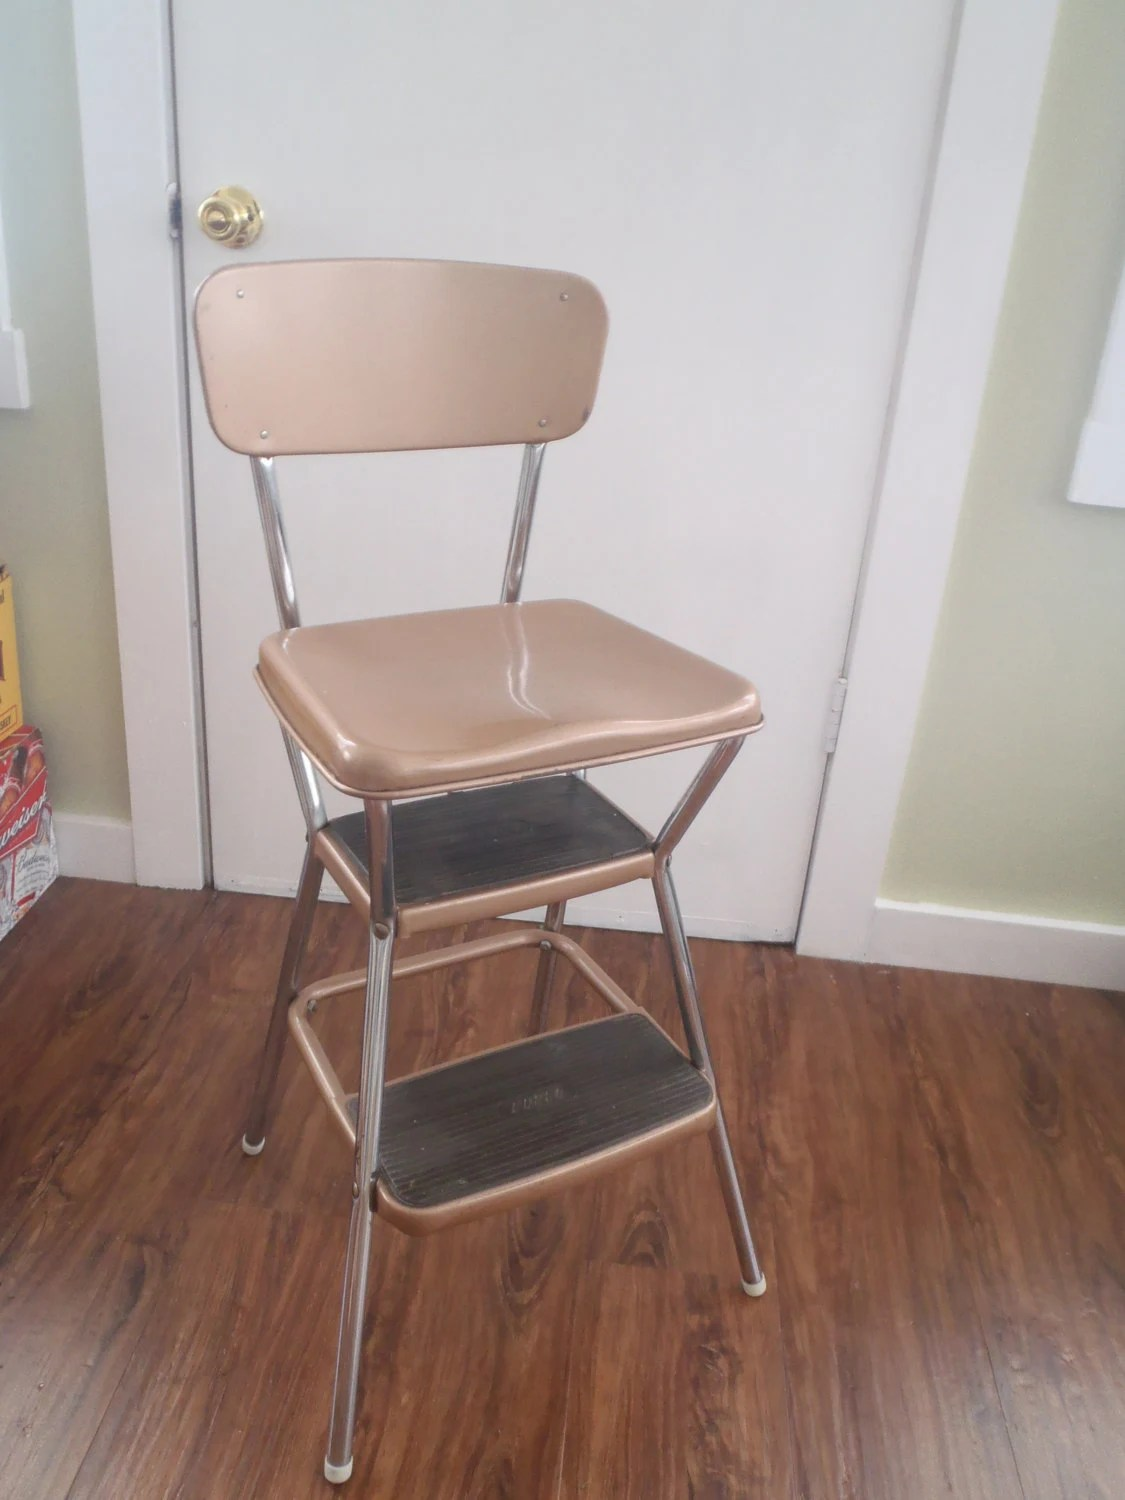 cosco kitchen stool chair office caster replacement vintage step with by